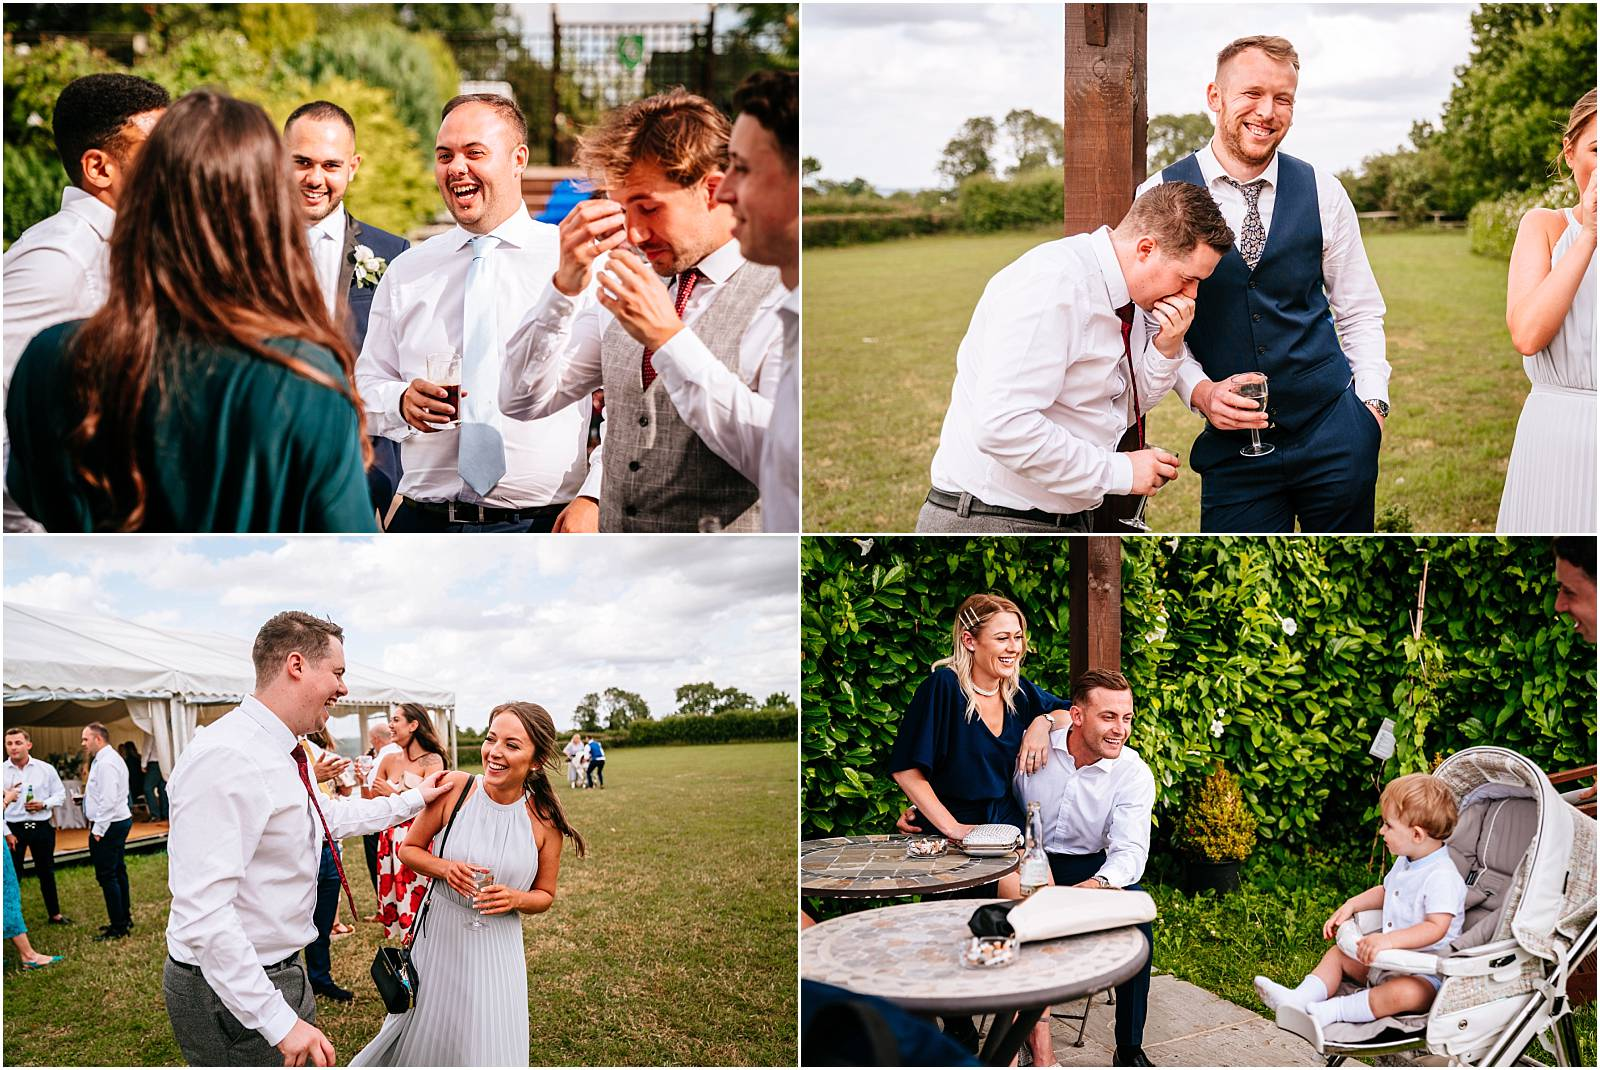 relaxed photos of guests having fun